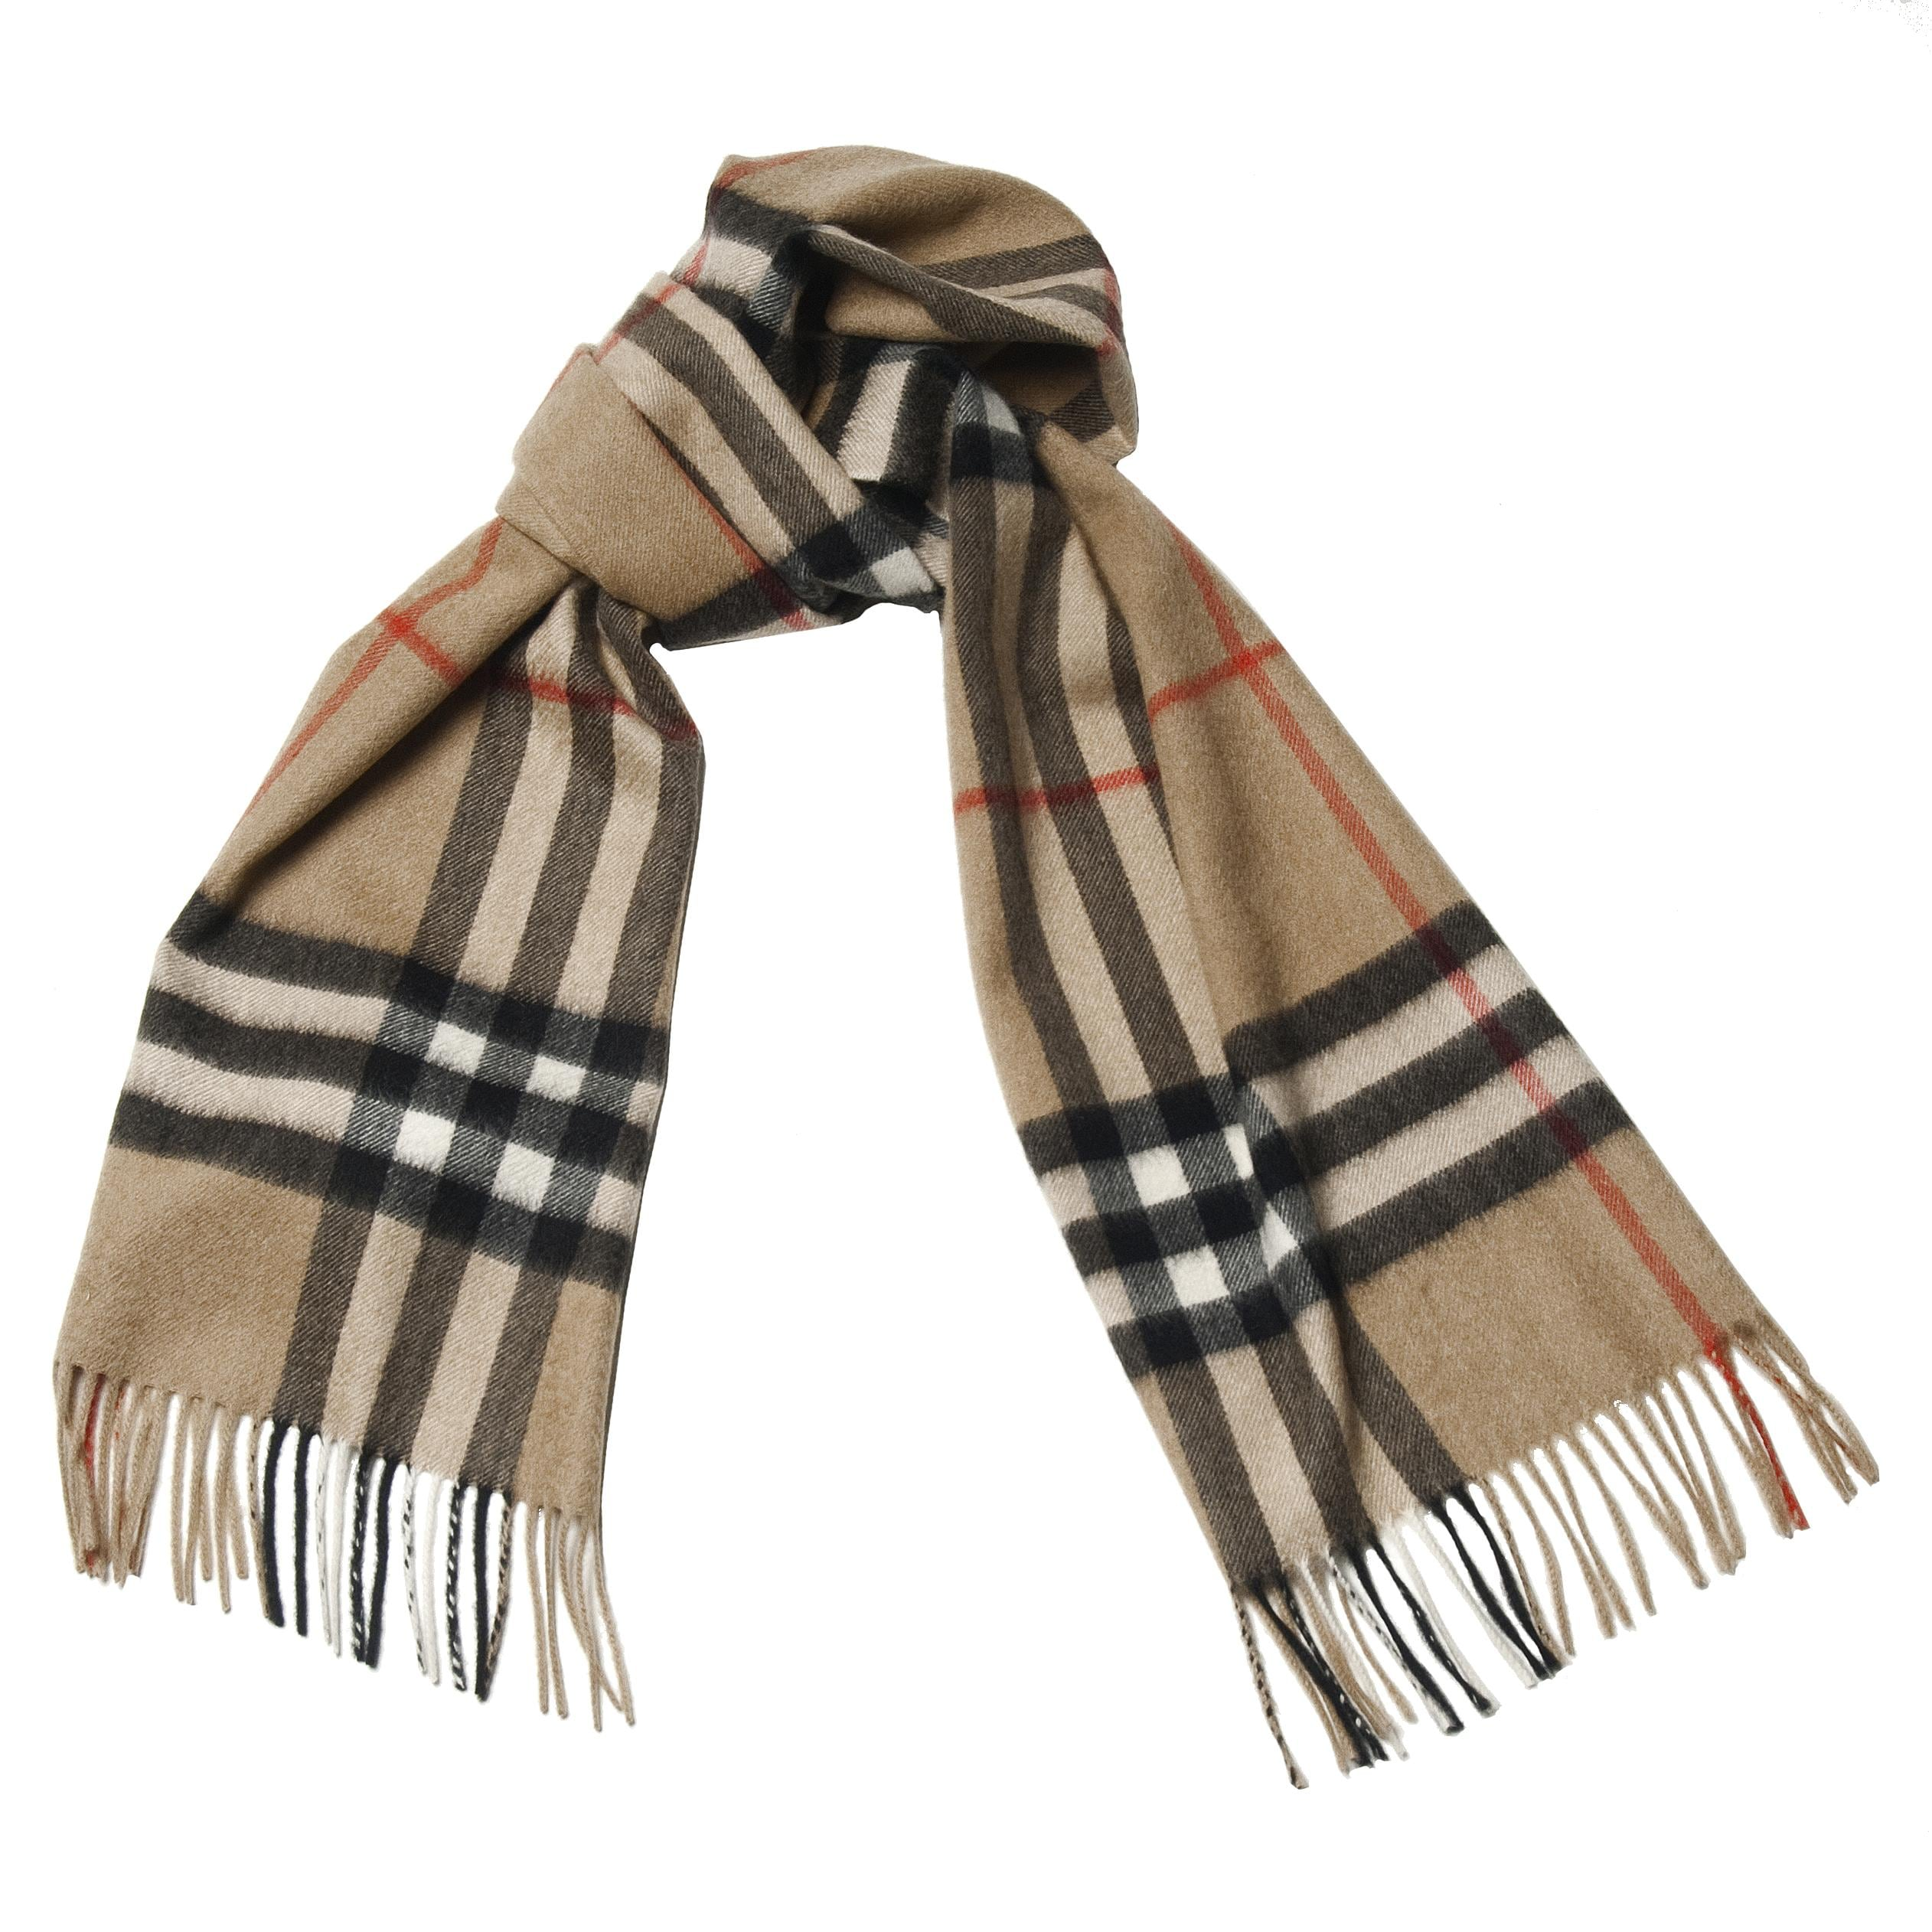 Burberry Plaid Camel Cashmere Scarf  JustCampus Cashmere Burberry Scarves